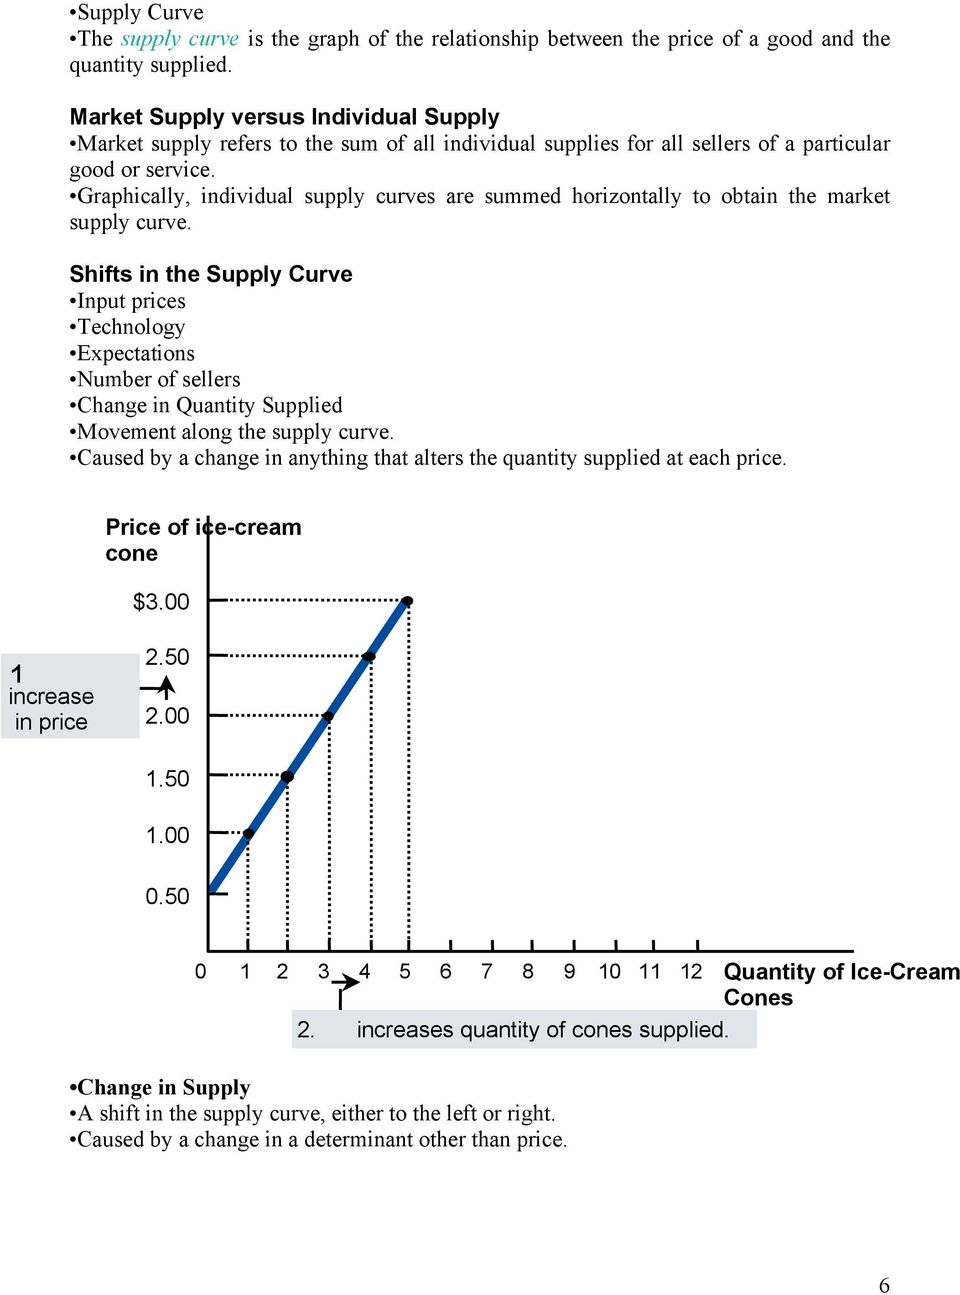 Graphically, individual supply curves are summed horizontally to obtain the market supply curve.